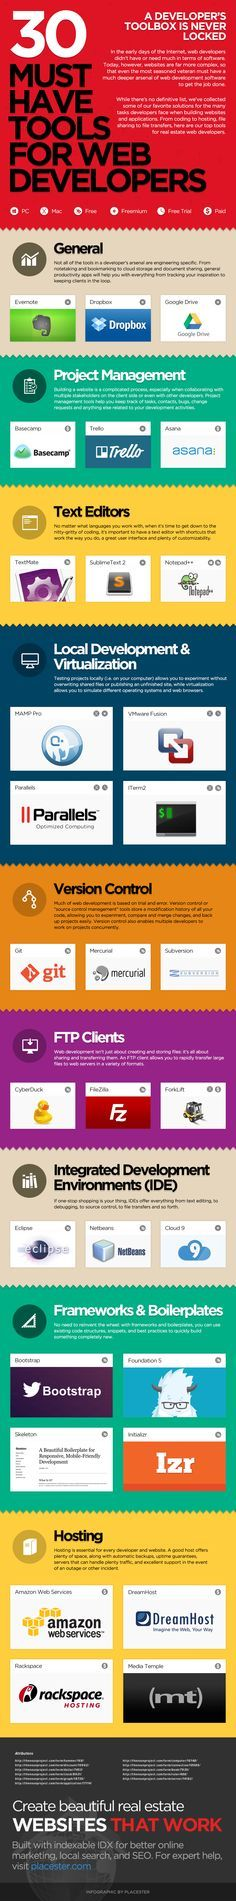 30 Must Have Tools for Web Developers Latest News & Trends on webdesign and webdevelopment